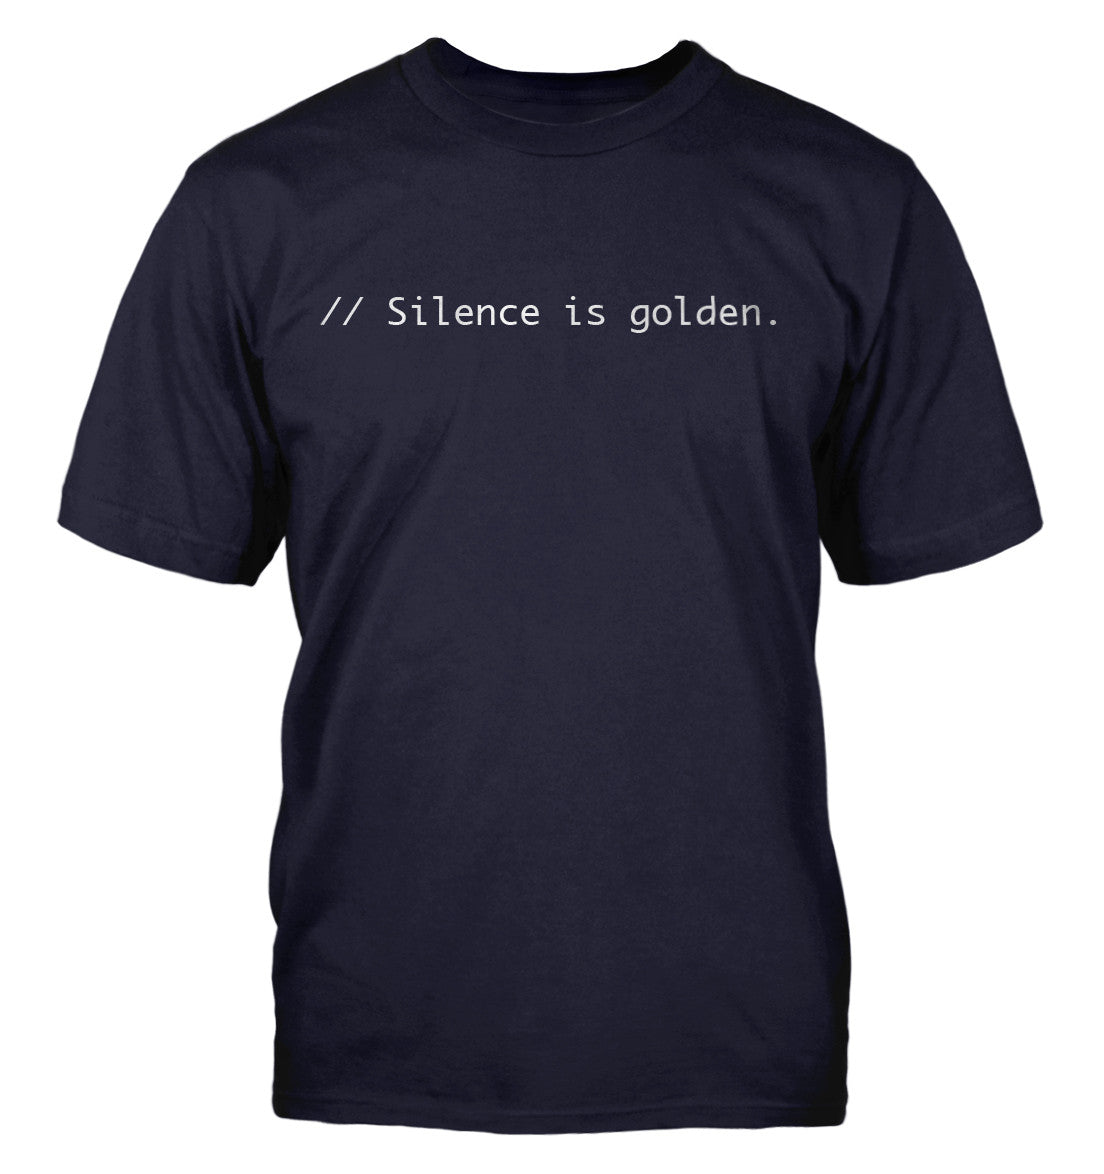 Silence is golden. t shirt for programmer and Wordpress lovers